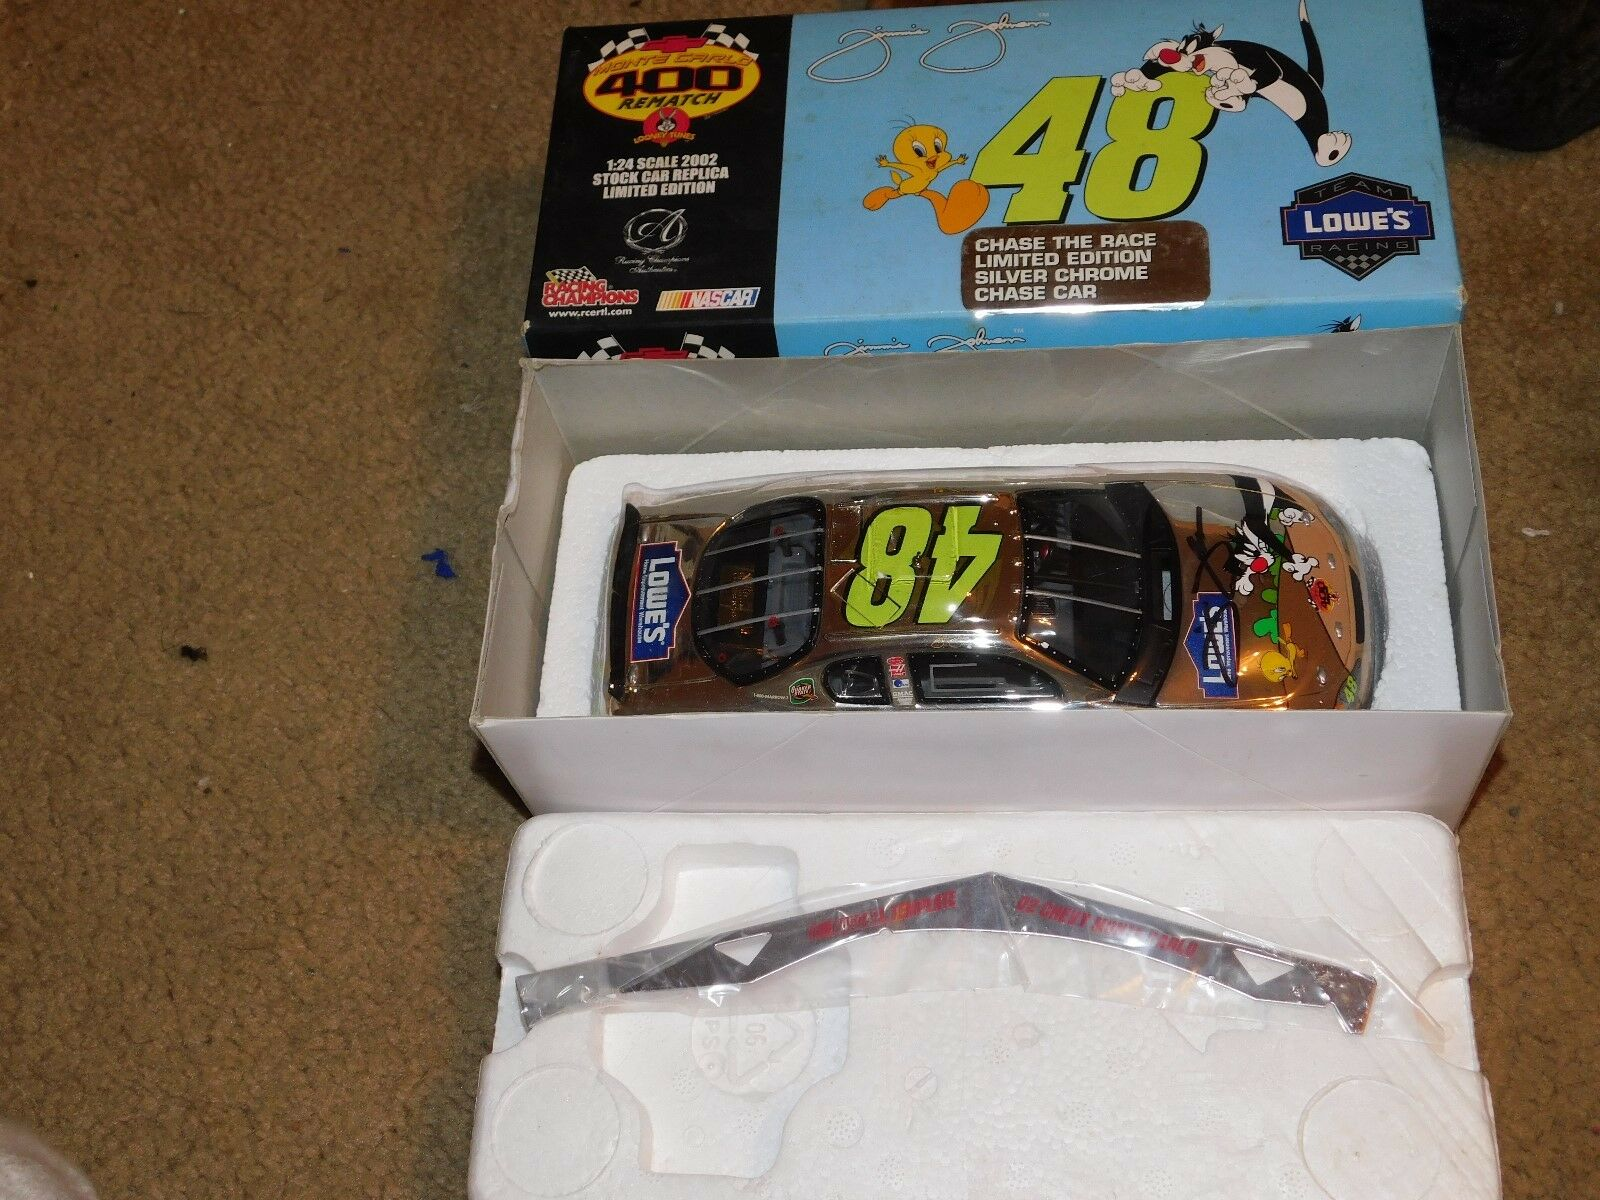 1 24 Racing Champions Lowe's  48 Chase Race Chrome signé Looney Tunes autographe